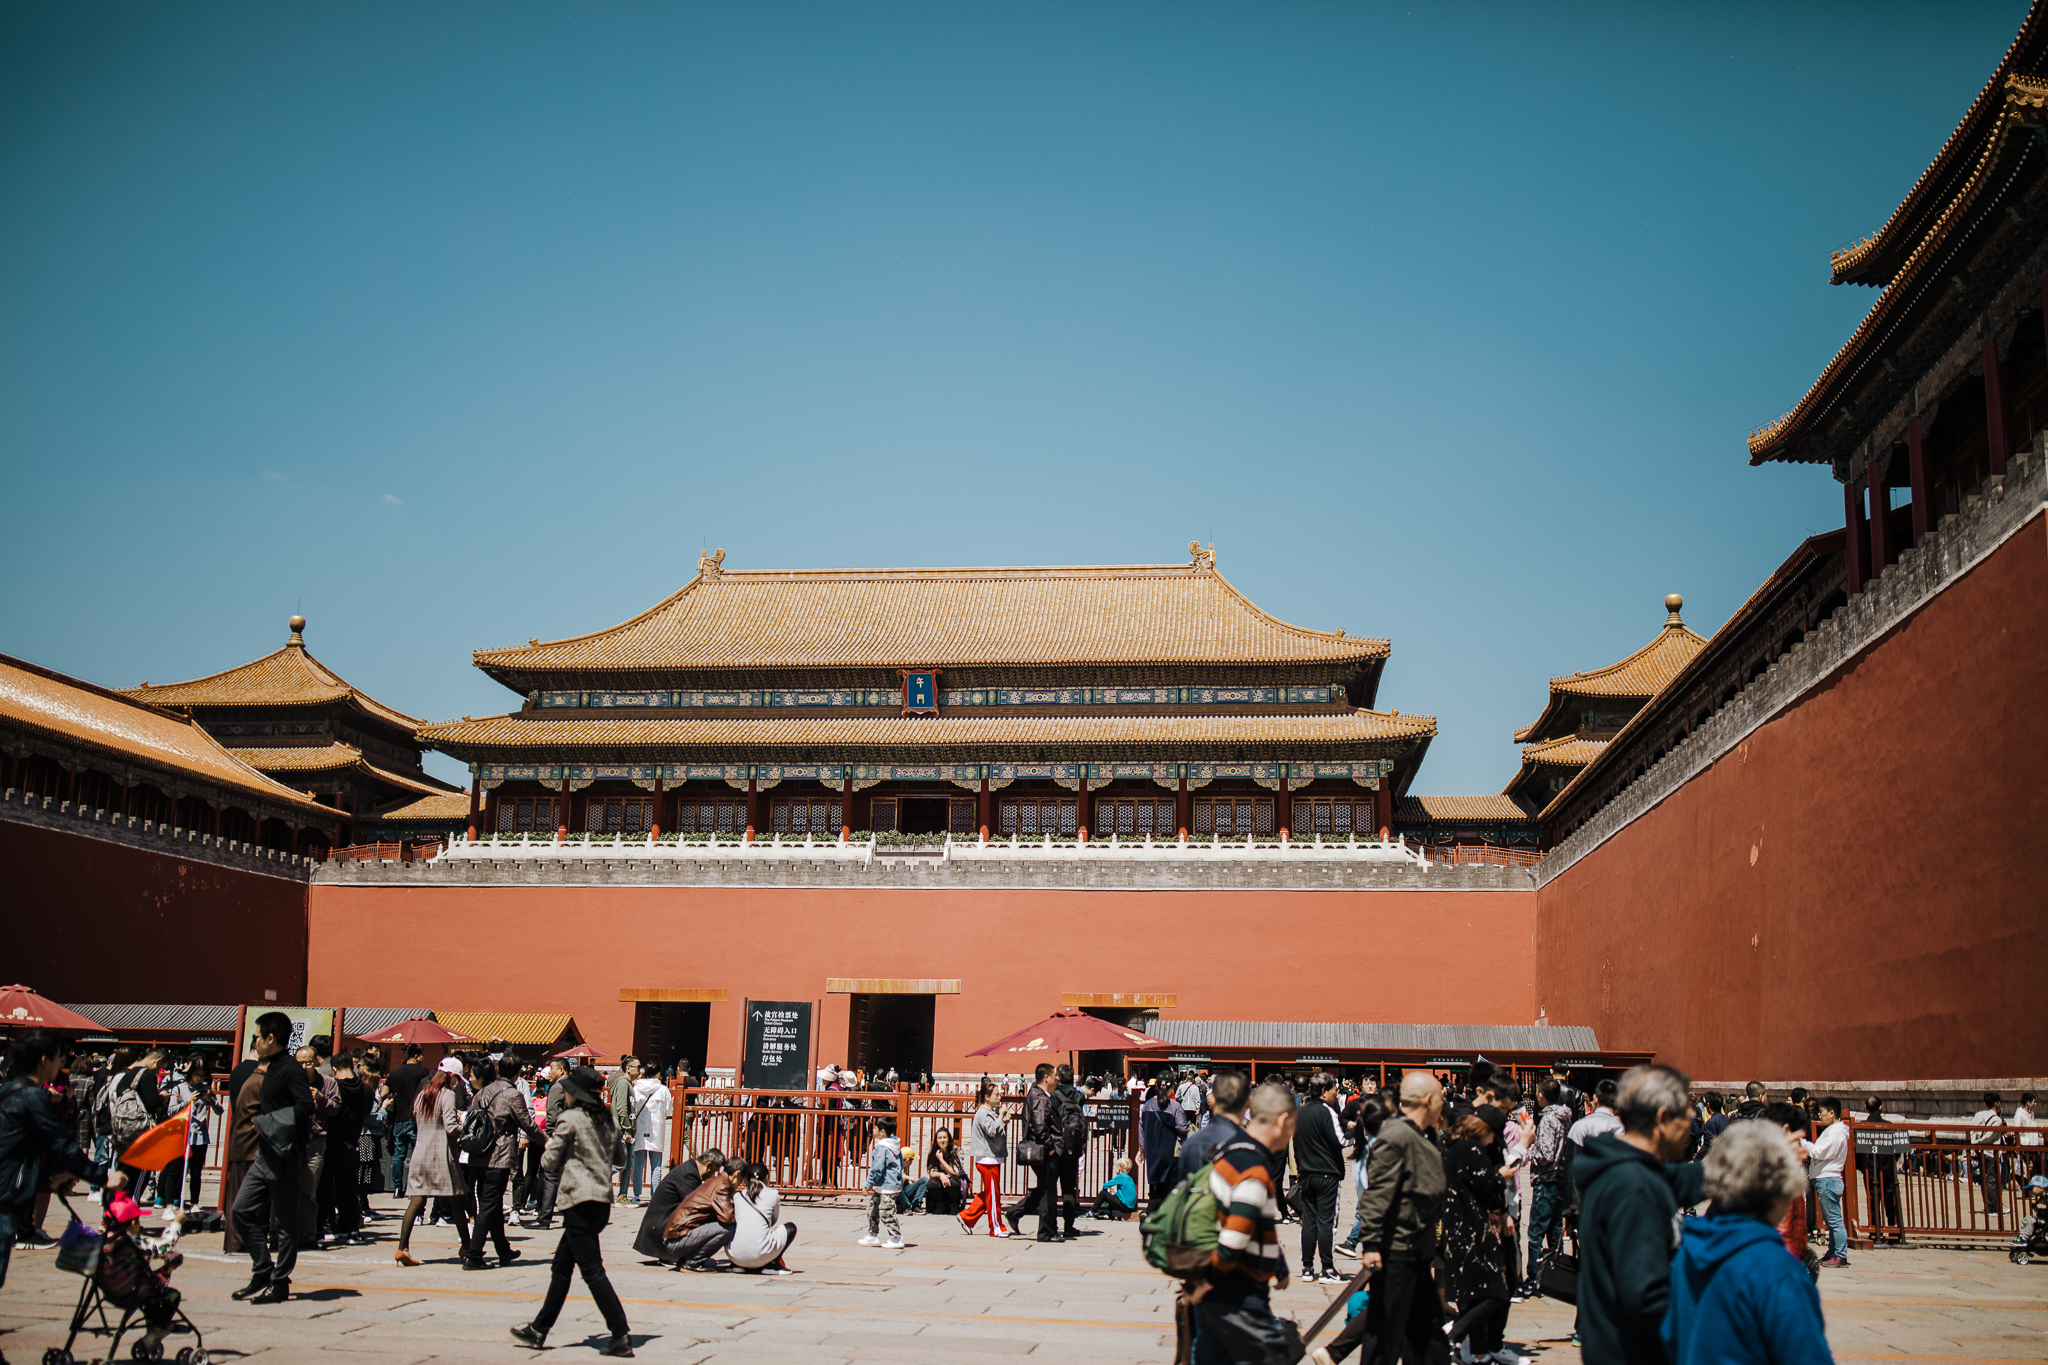 Mutianyu, Great Wall of China,  Beijing, Forbidden City, Emperors Summer Palace (5 of 51).jpg